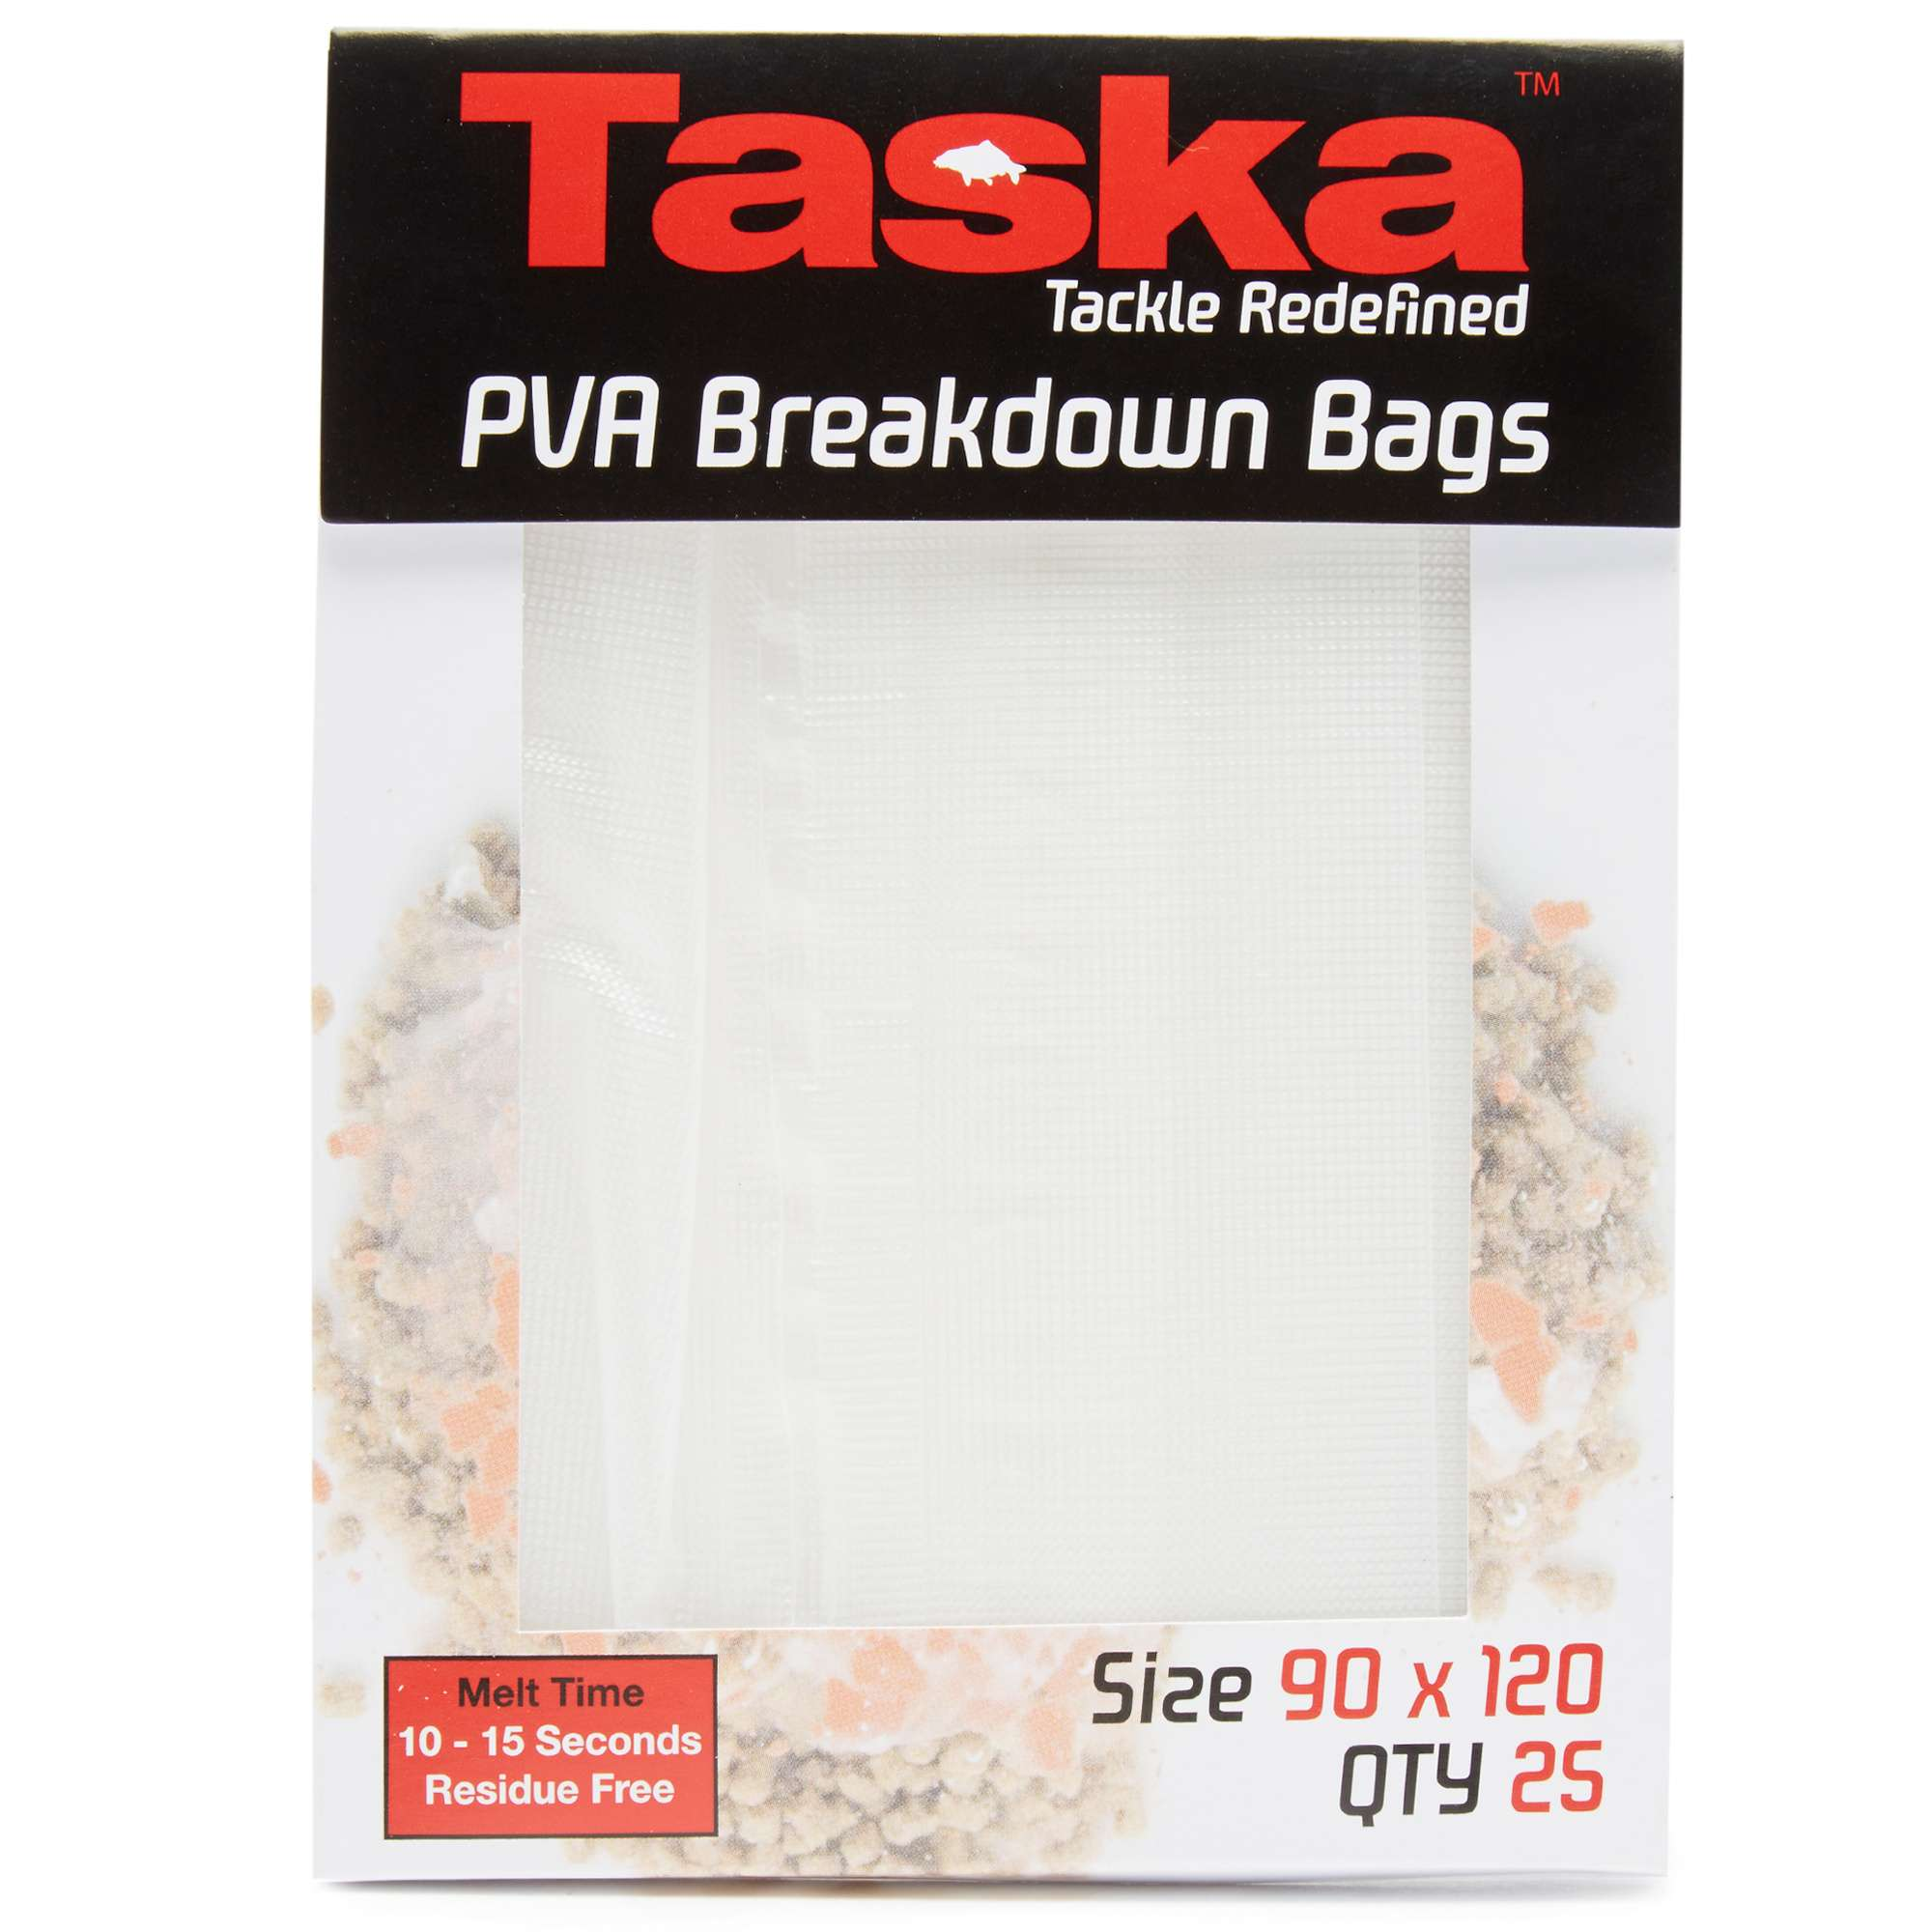 TASKA PVA Breakdown Bags 90 x 120mm - 25 Pack